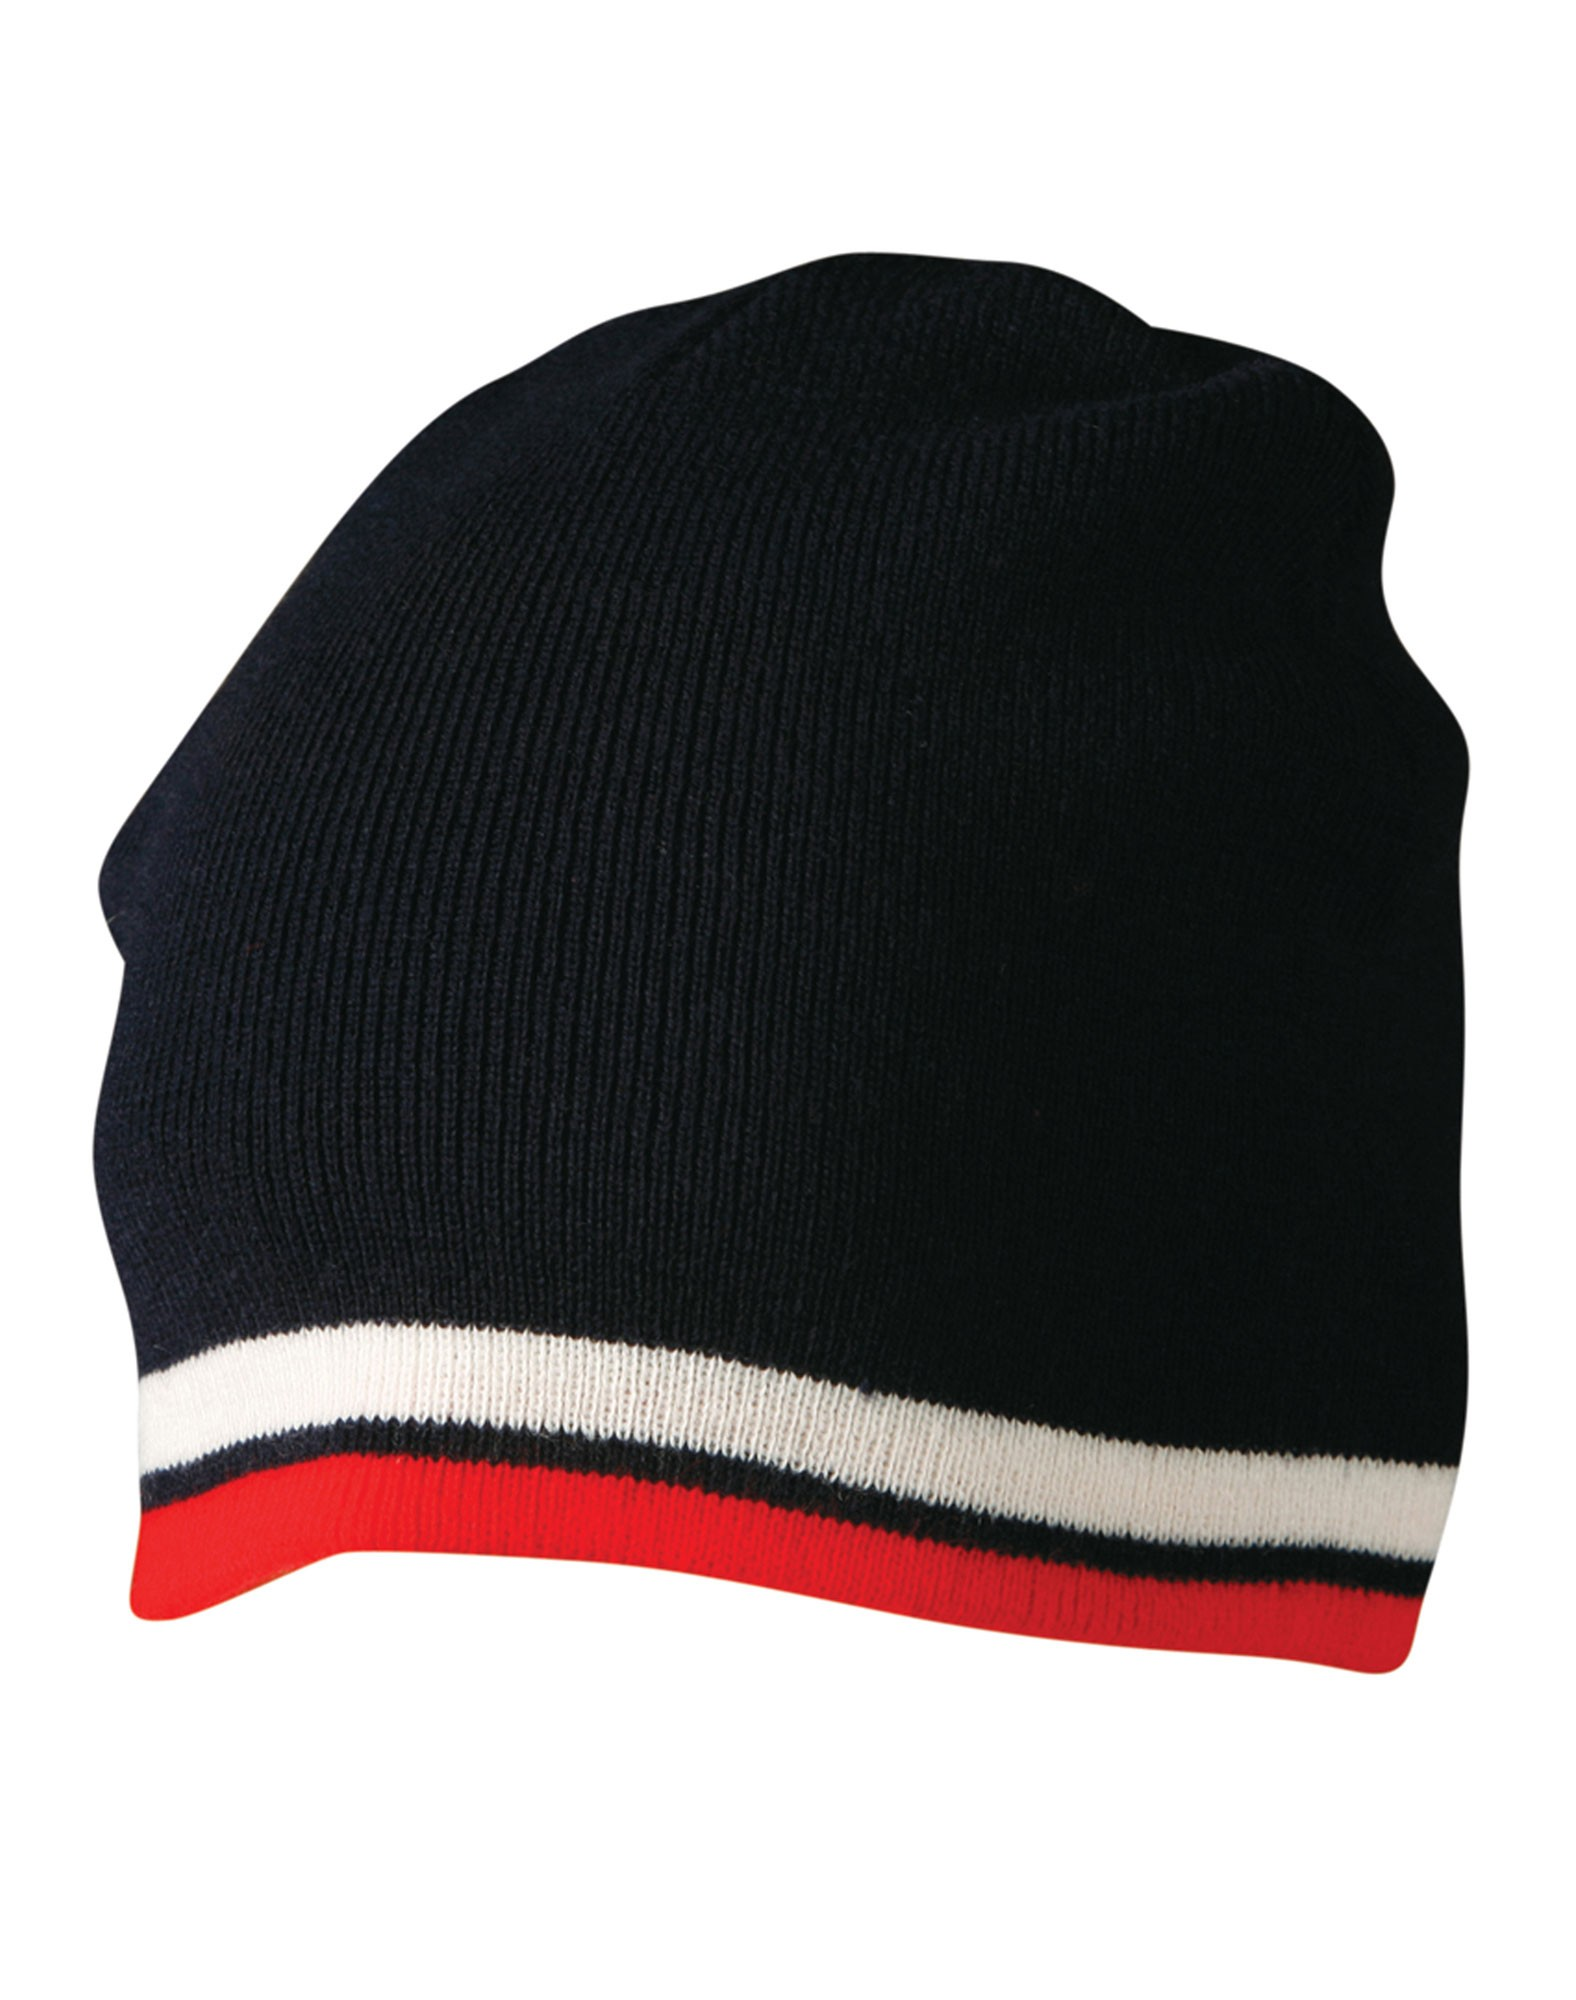 Knitted Acrylic With contrast Stripe Beanie